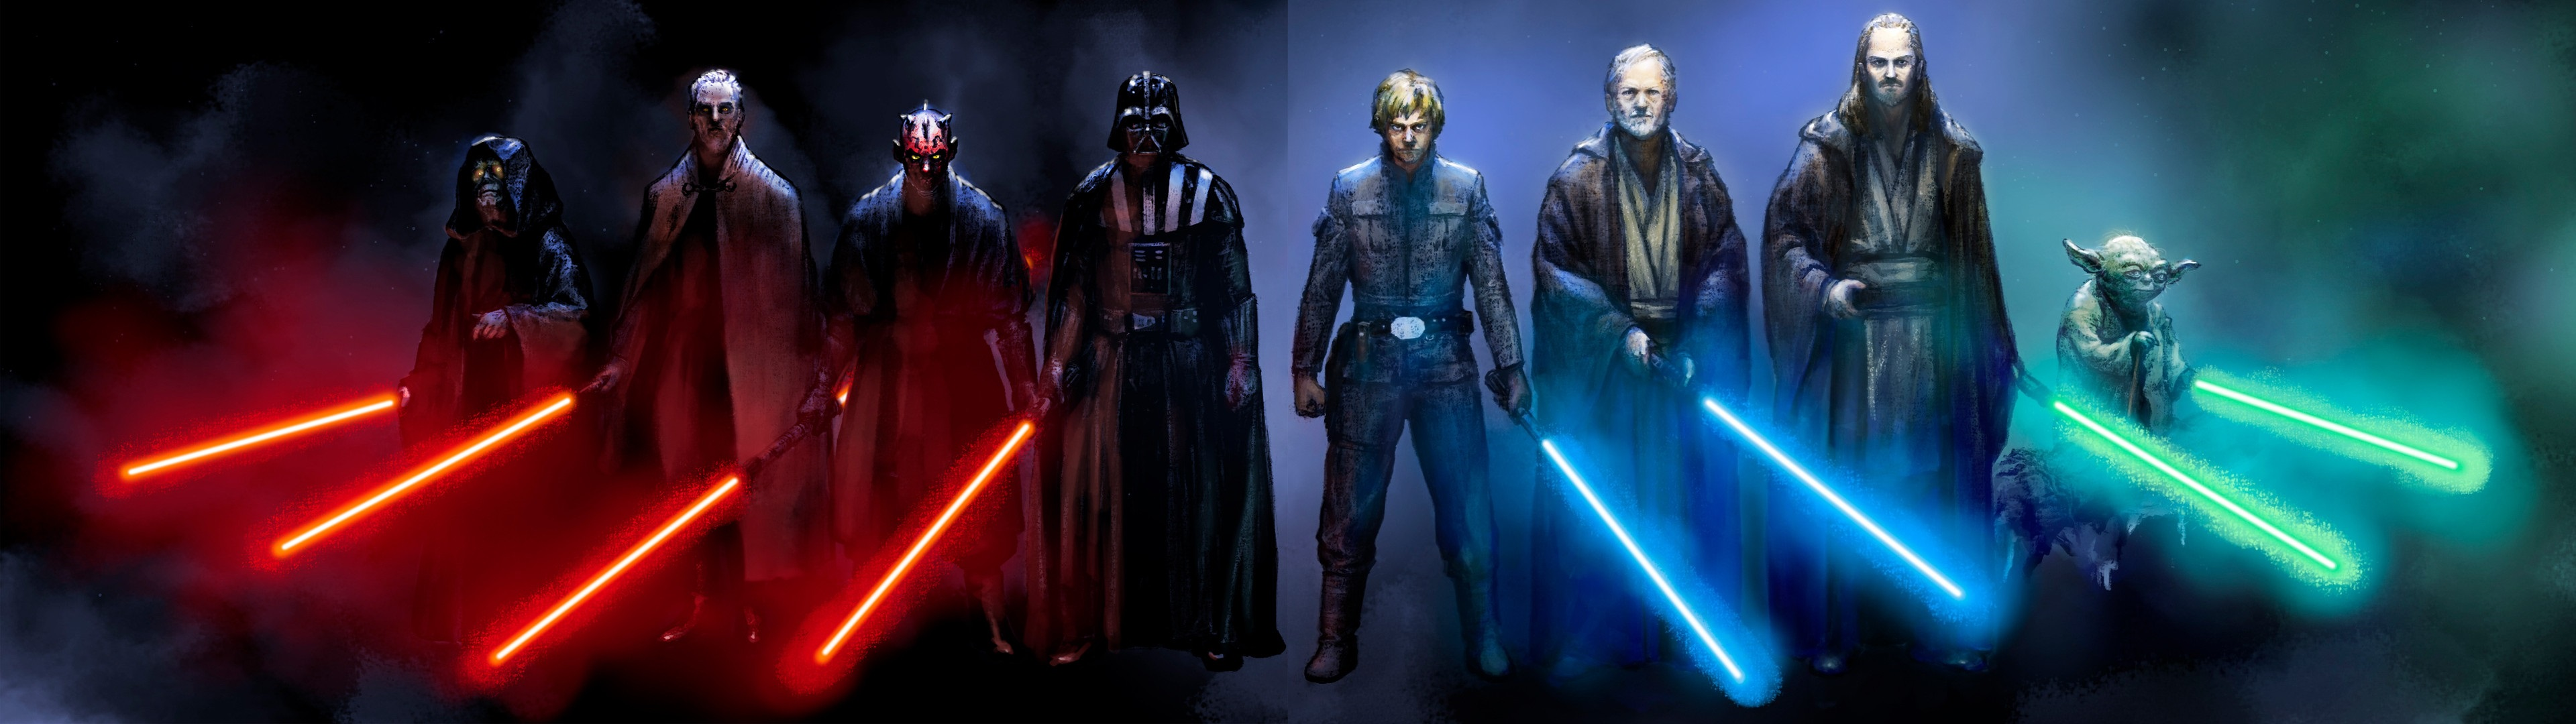 Star Wars The Sith Lords And Jedi Knights Full HD Wallpaper